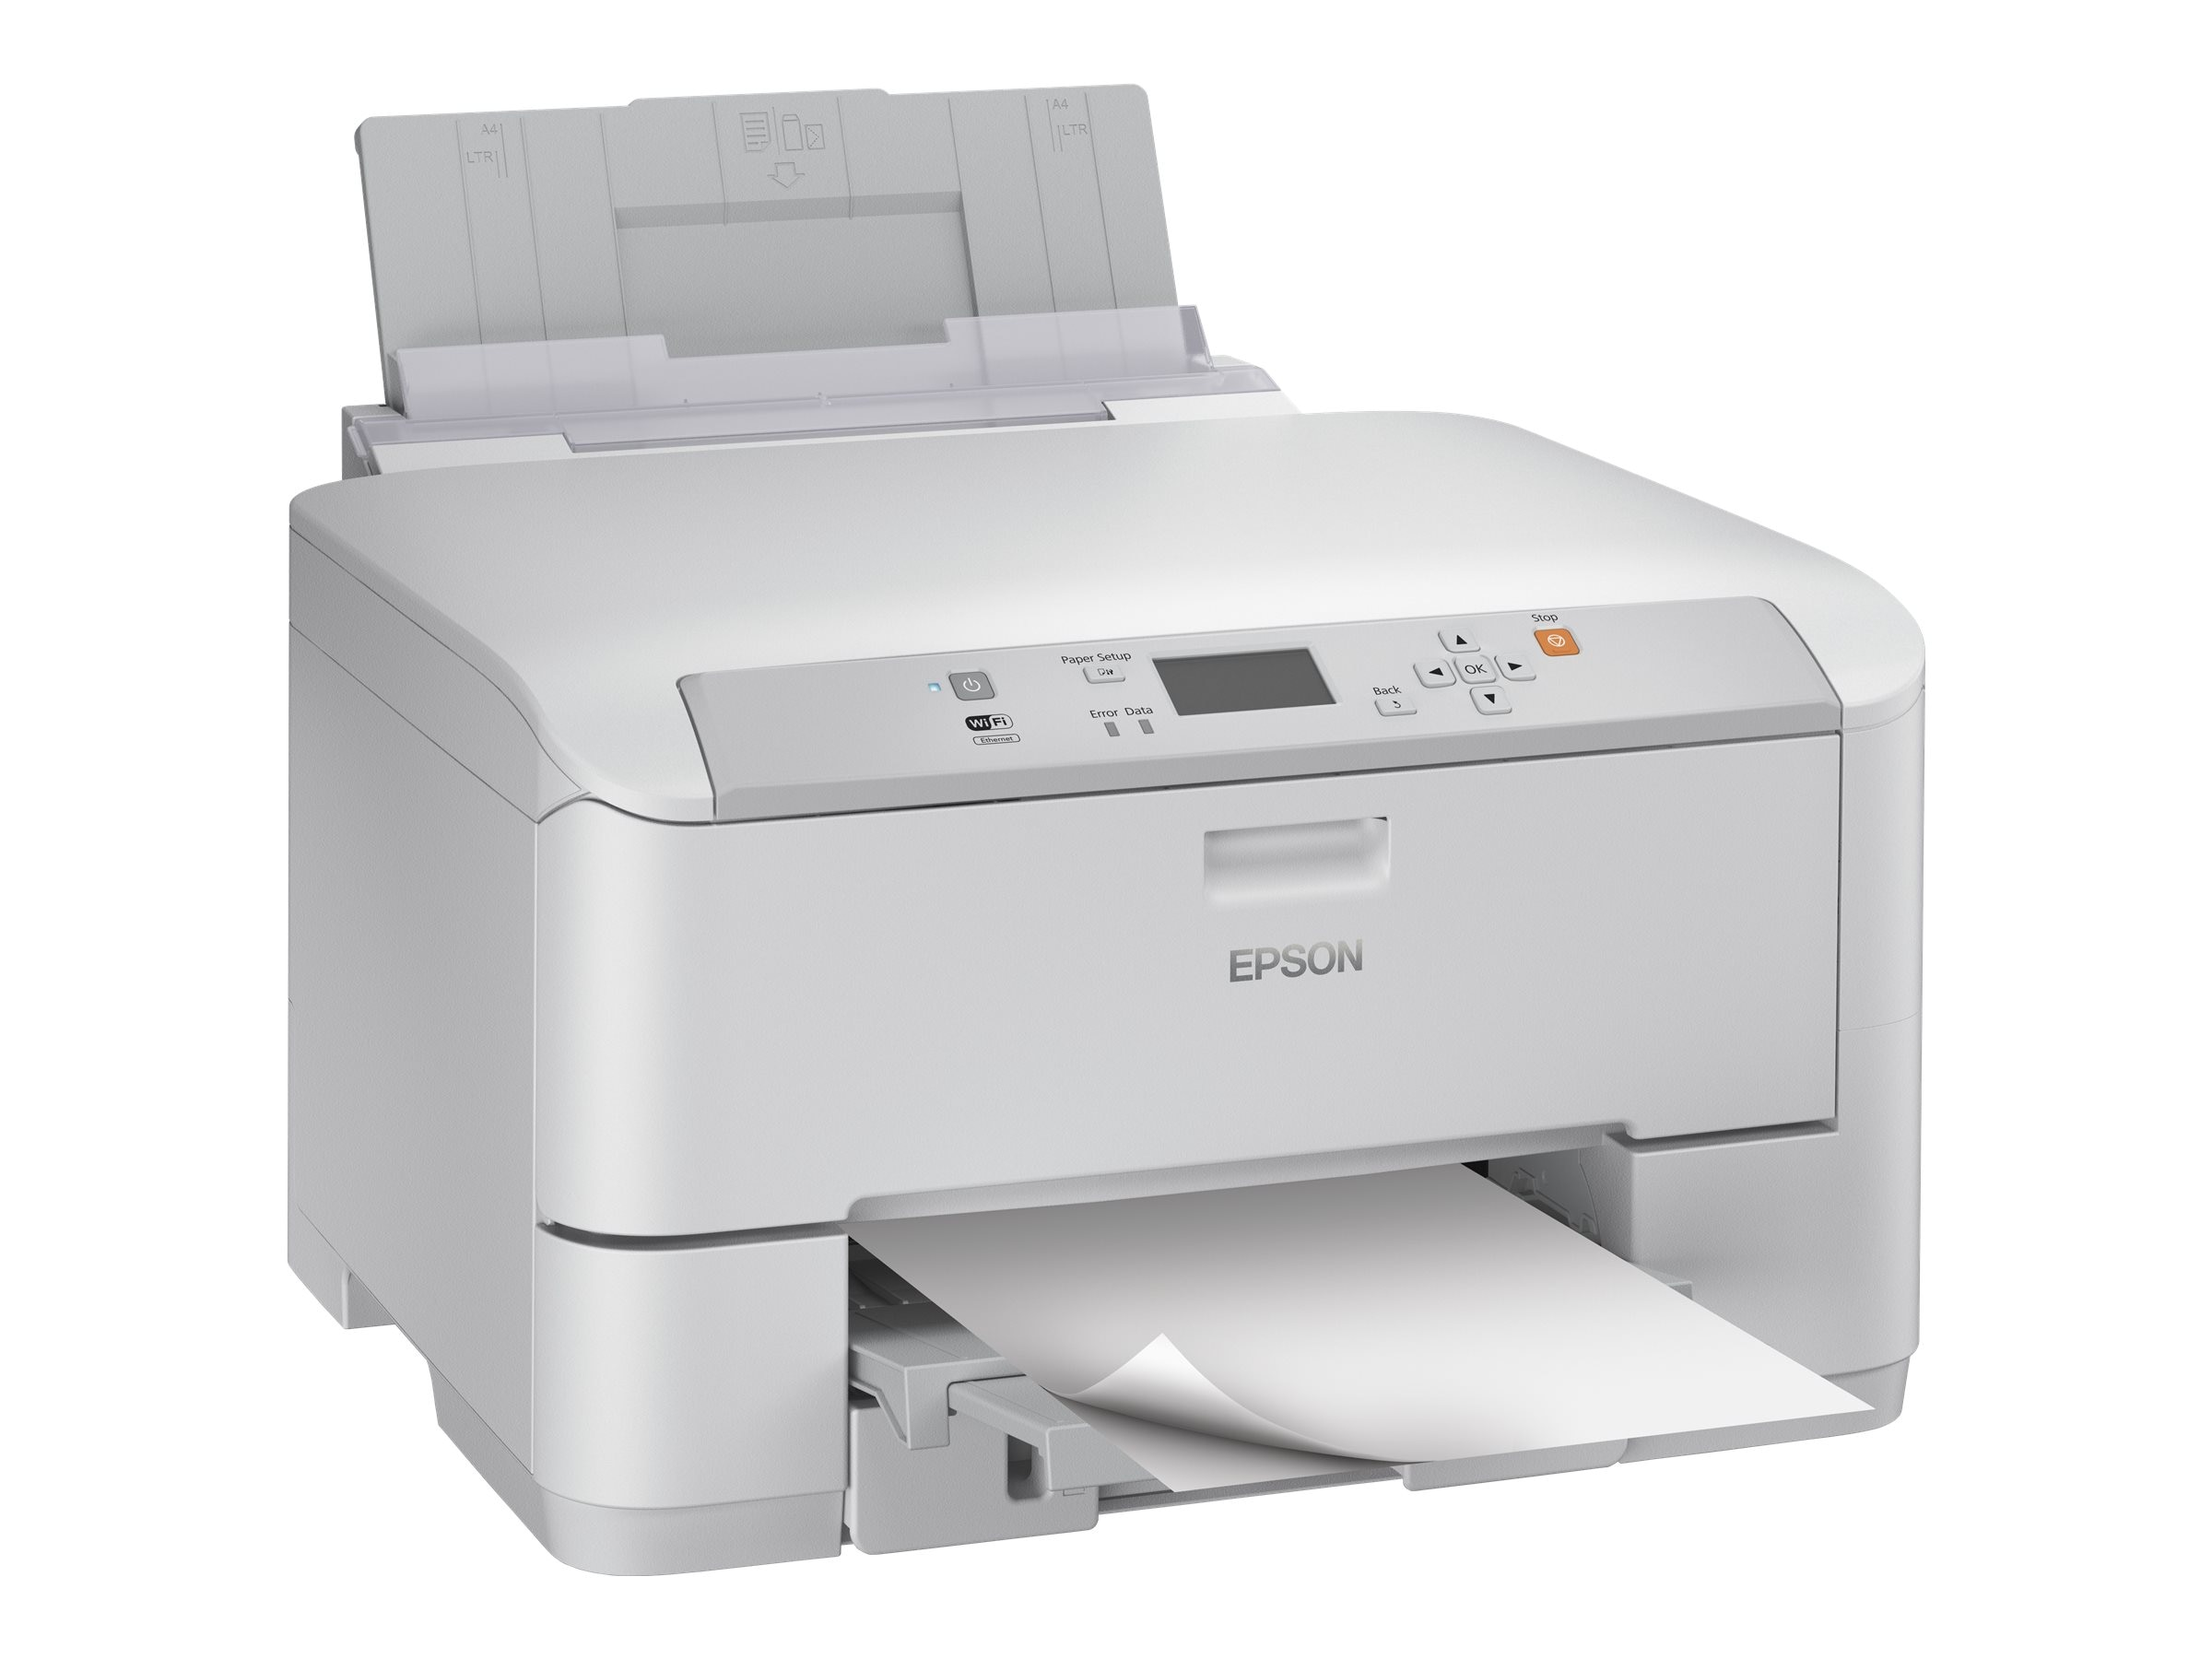 Epson WorkForce Pro WF-5190 Network Color Printer w  PCL Adobe PS, C11CD15201